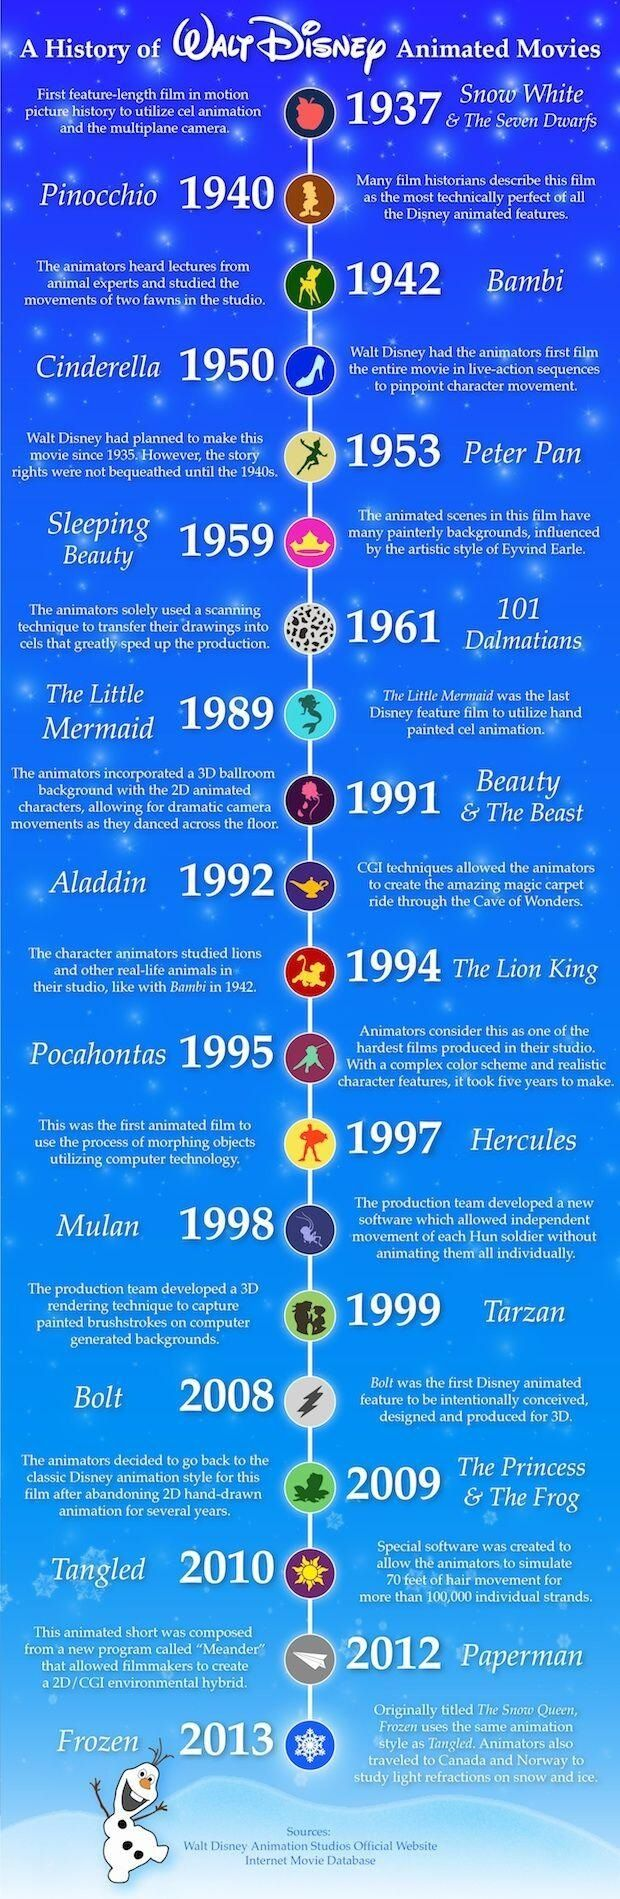 Timeline of Walt Disney Animated Movies.